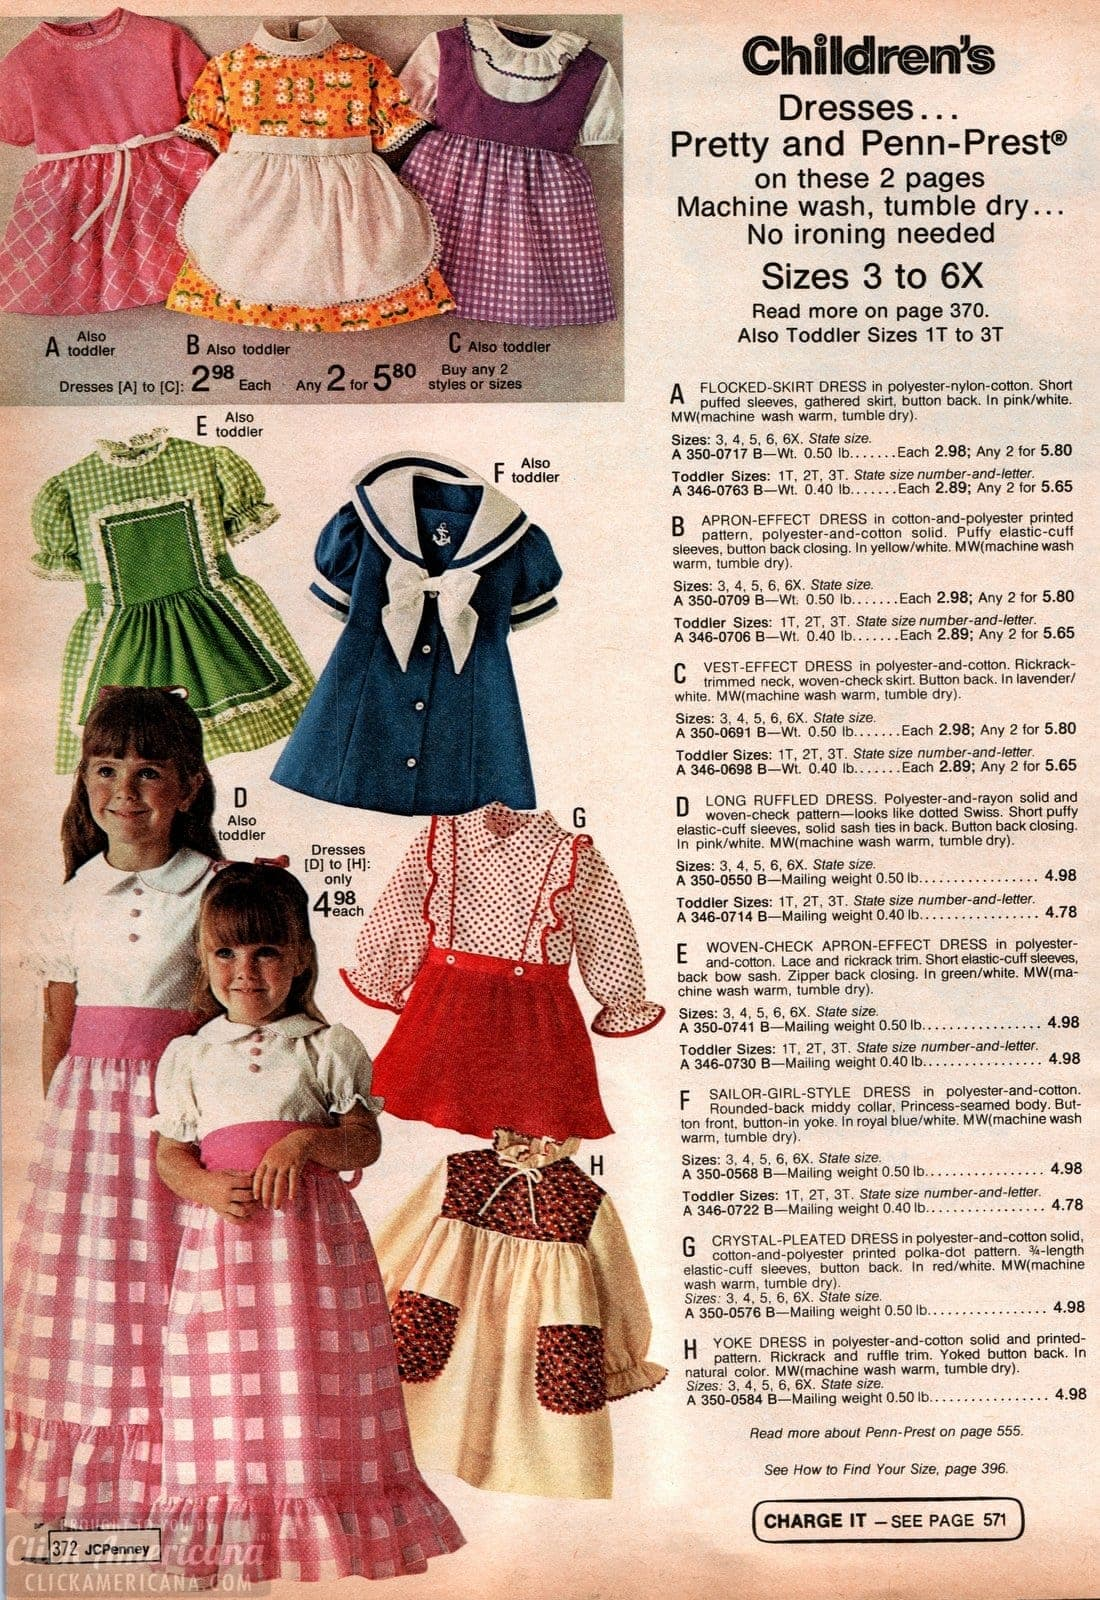 70s ruffled dresses and dresses with aprons for little girls - from 1973